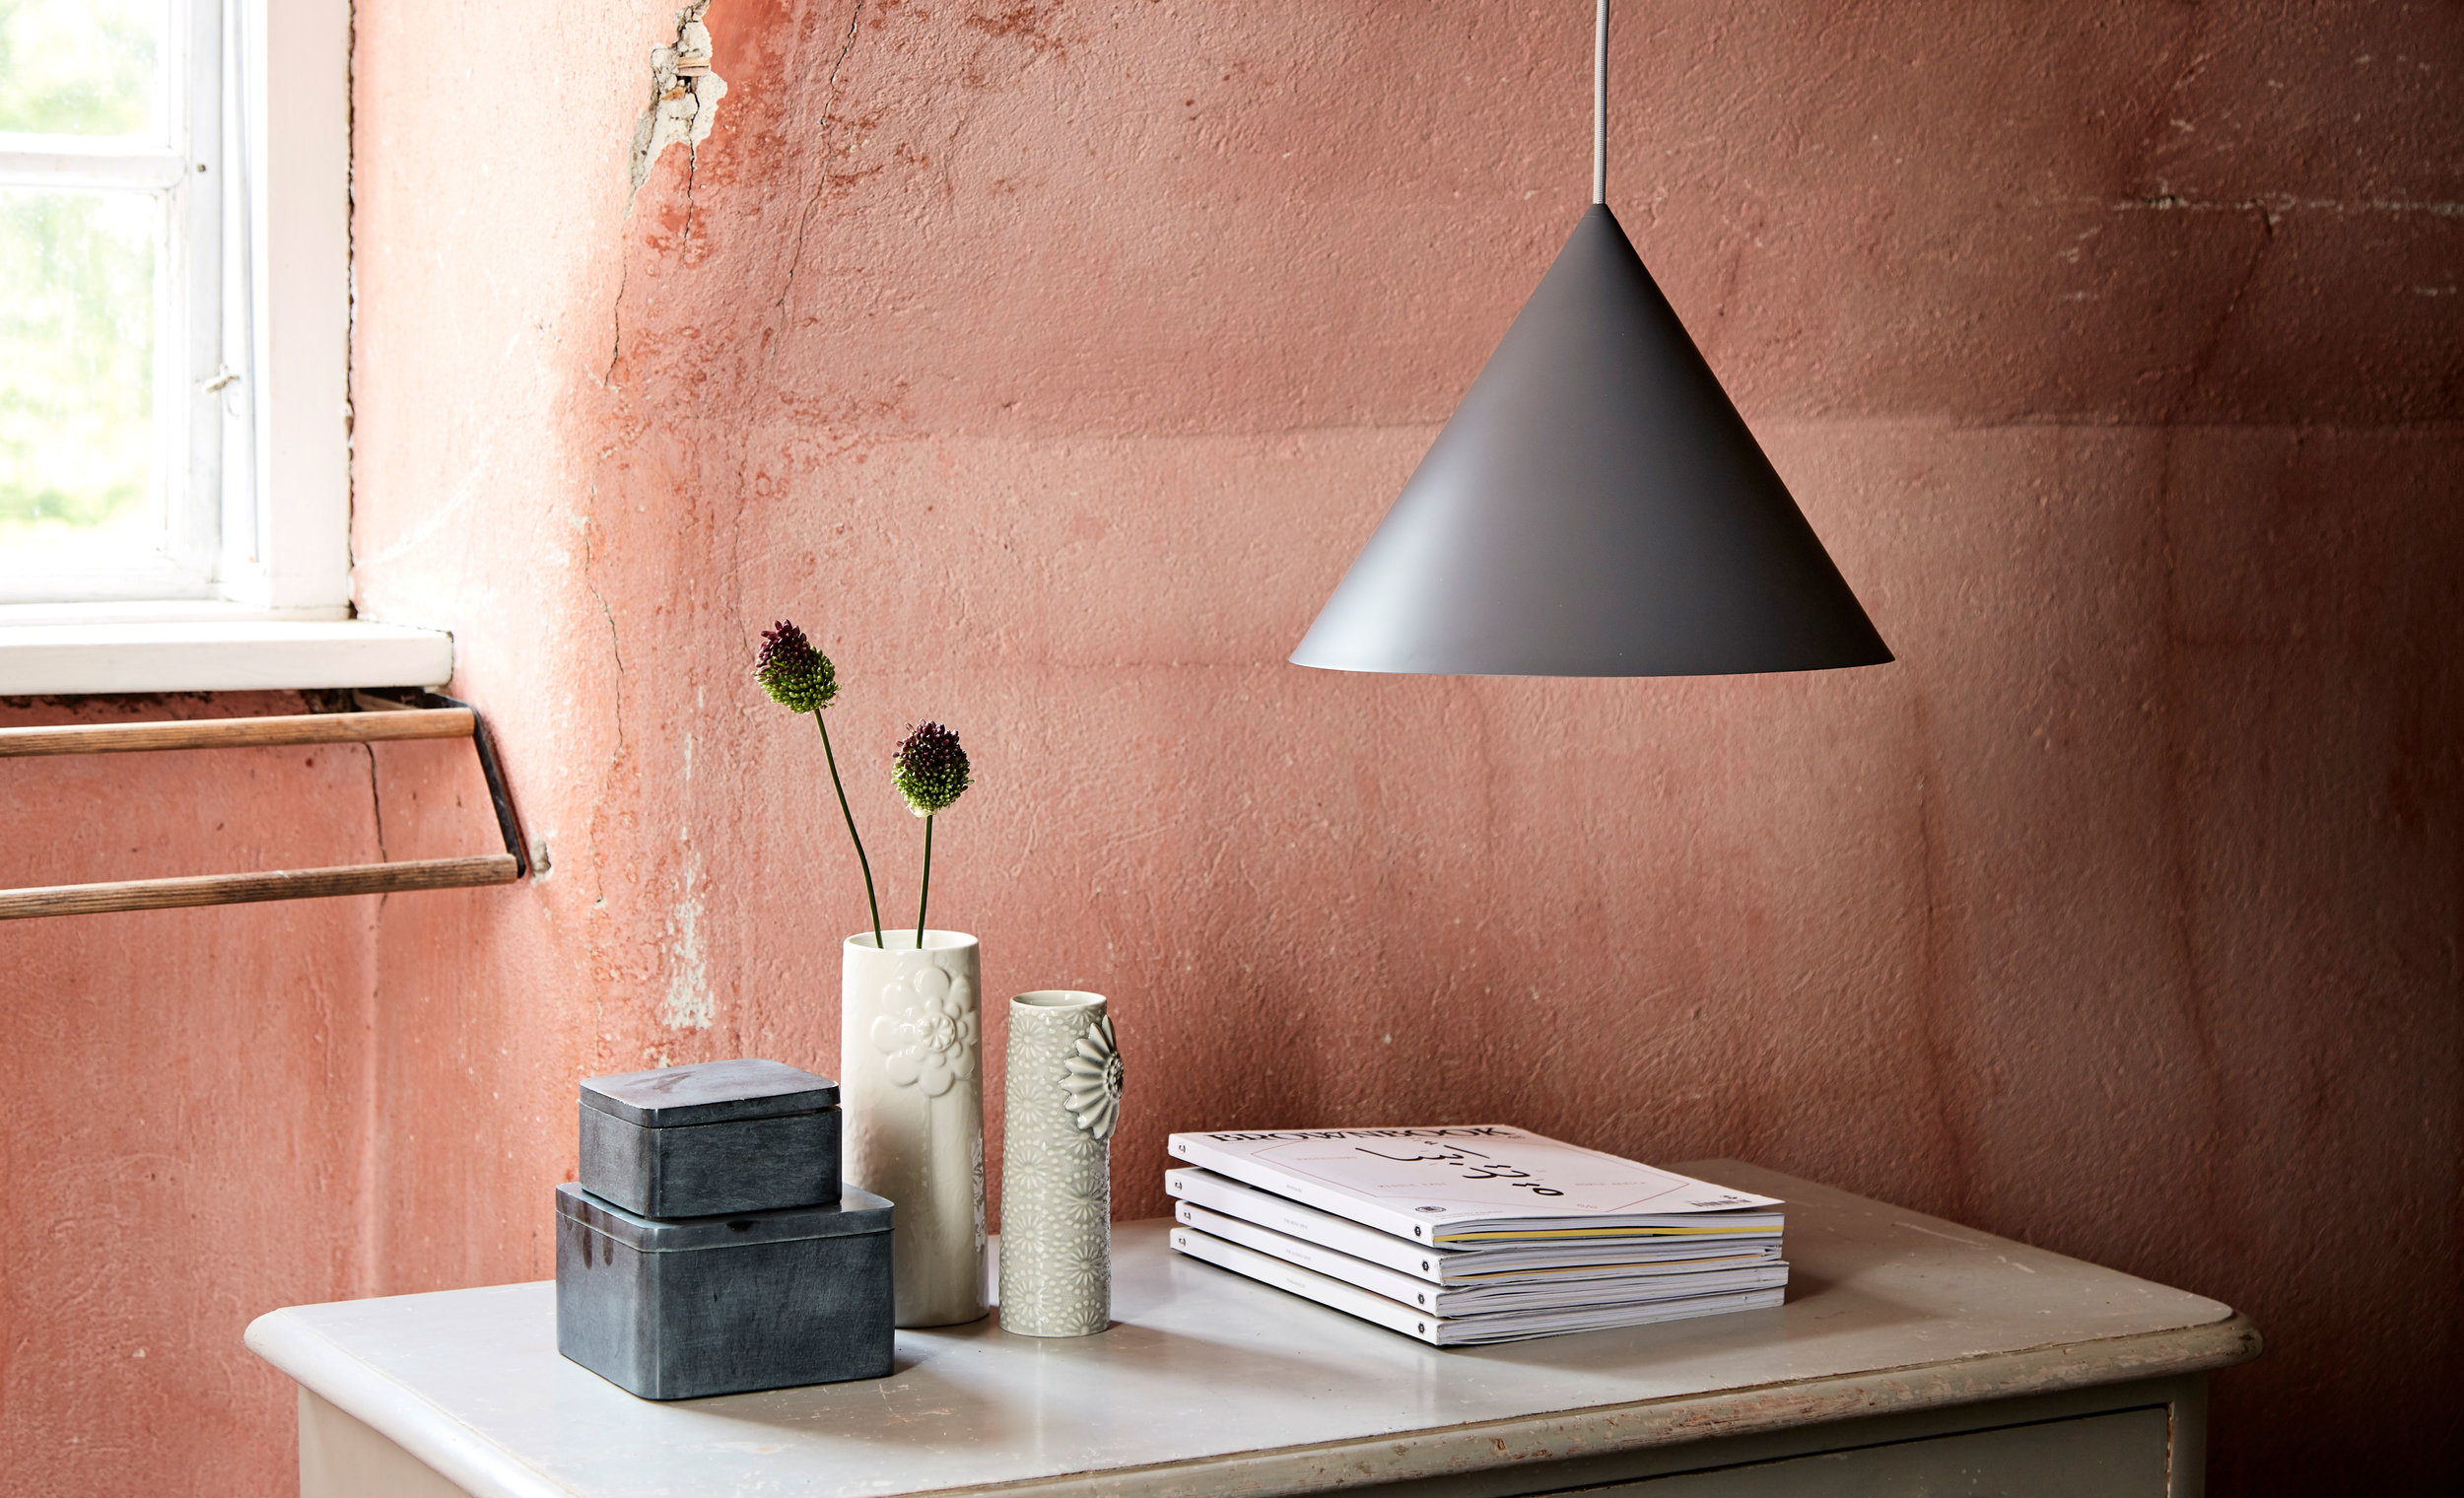 """""""The cone is a classic geometric shape like the cube and the sphere. Vilhelm Lundstrøm plays with these forms in his paintings of minimalist tableaux, and now the cone has become the principle element in the Benjamin lamp series from Frandsen Retail. All models feature a distinctive conical shade, a sharp graphic design and a monochromatic look.""""   READ"""